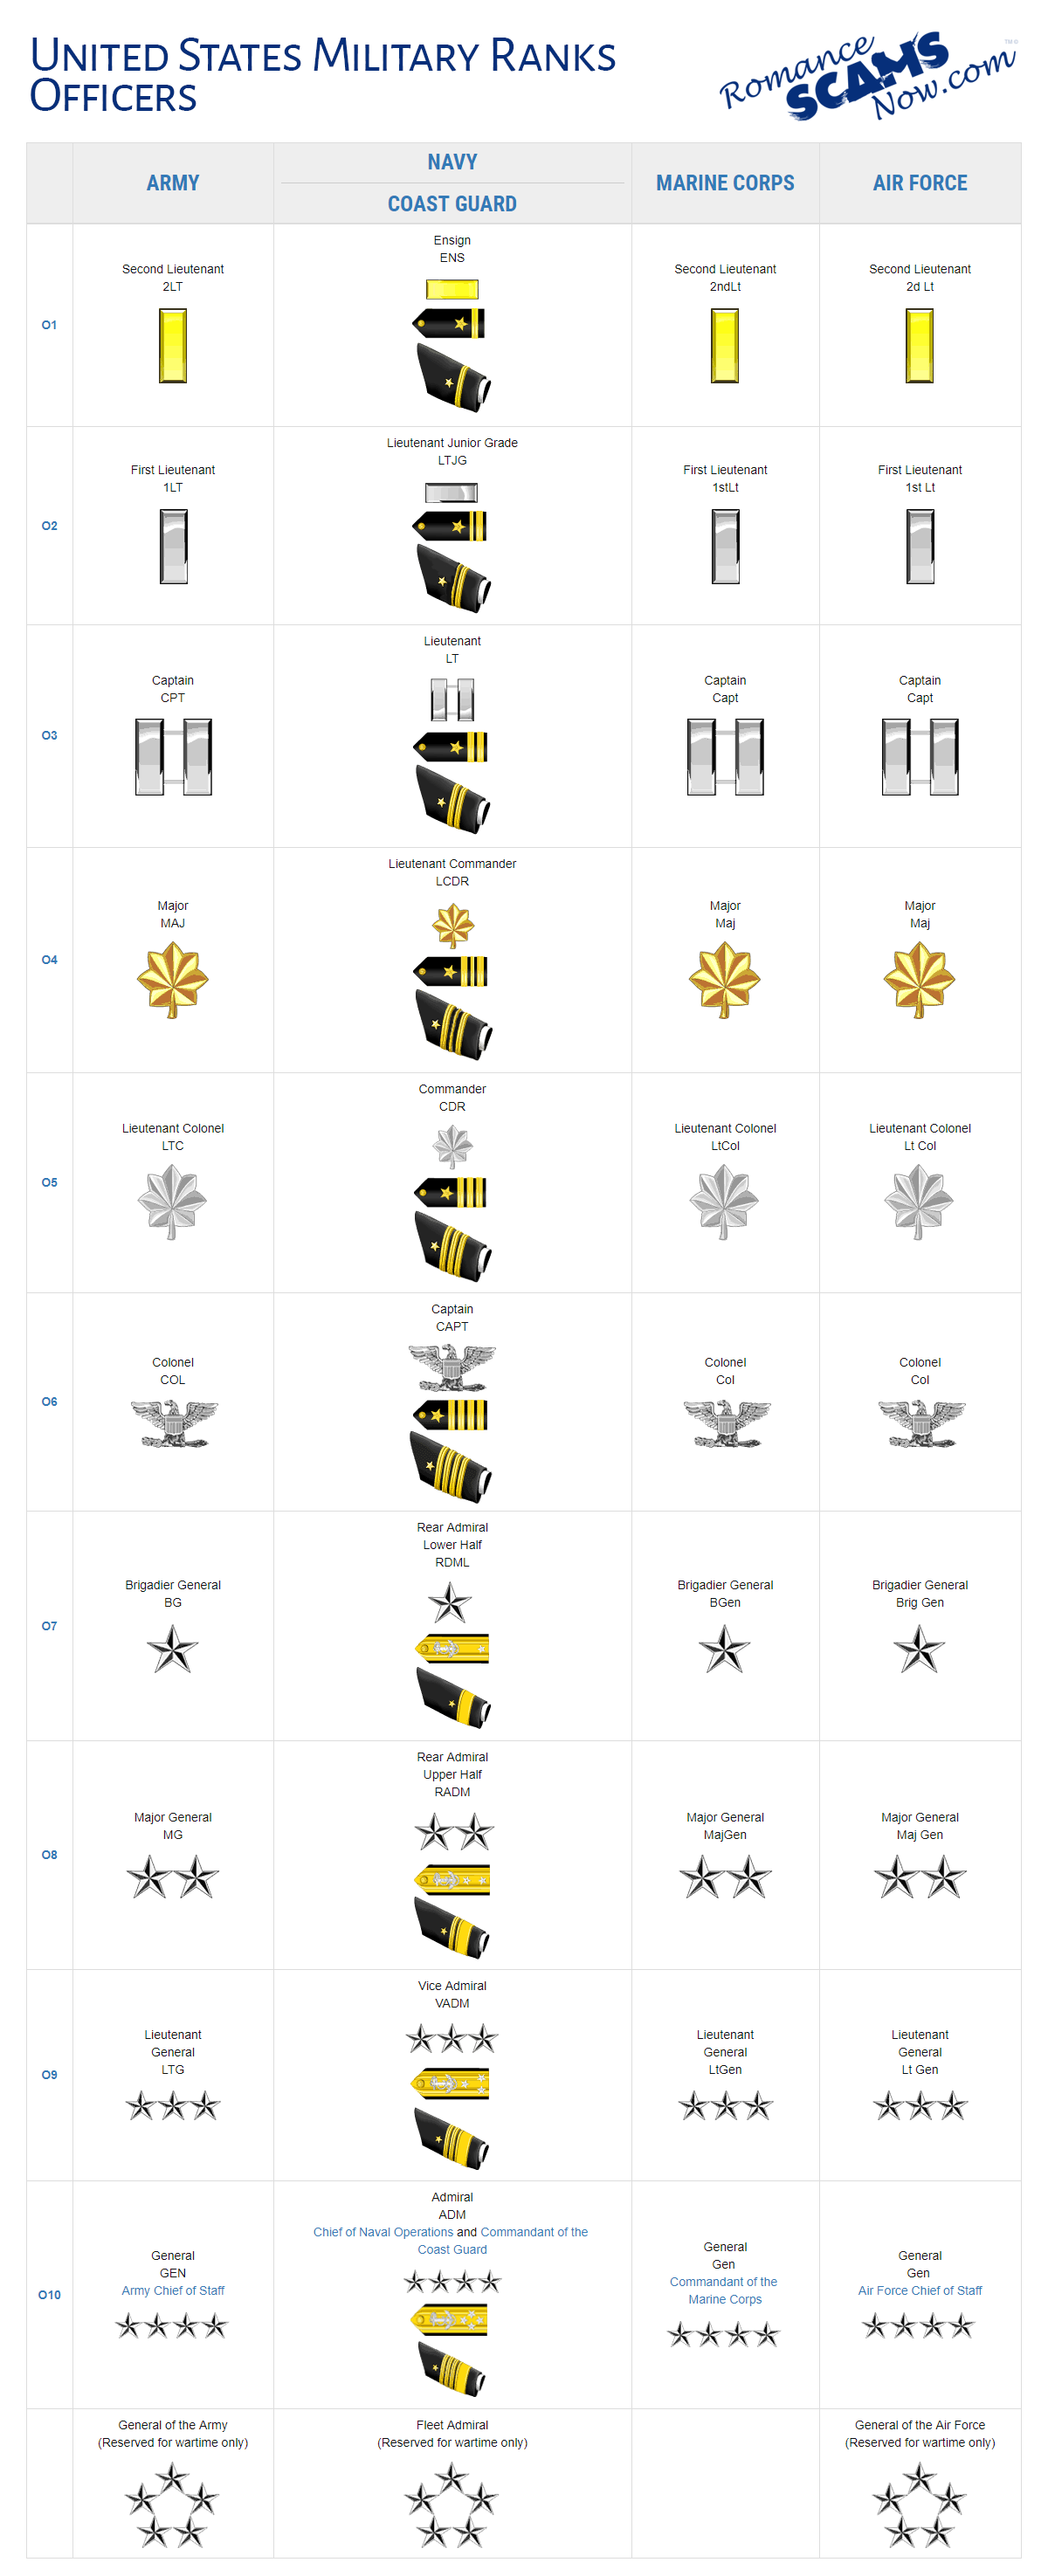 United States Military Rank Insignias - Officer Ranks - O1 - O10